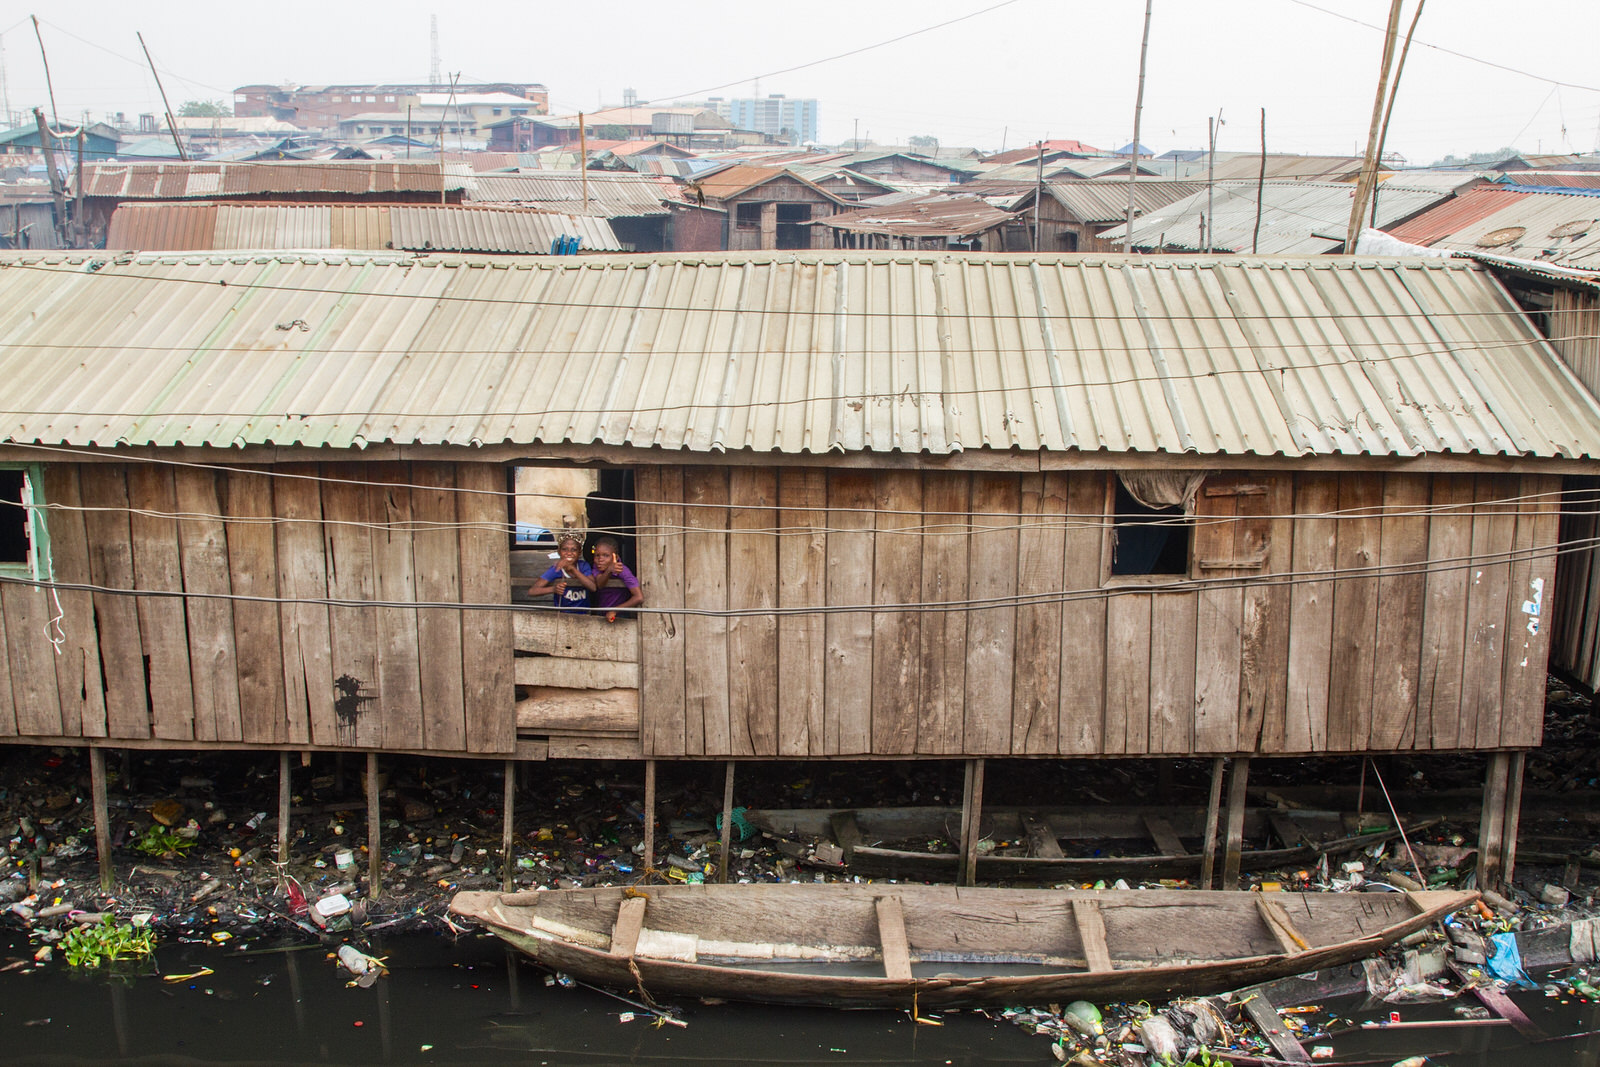 Makoko, was formed as a fishing village in the 19th Century. It is one of many waterfront communities in Lagos that live with a constant threat of eviction due to land-grabbing by the Lagos government.